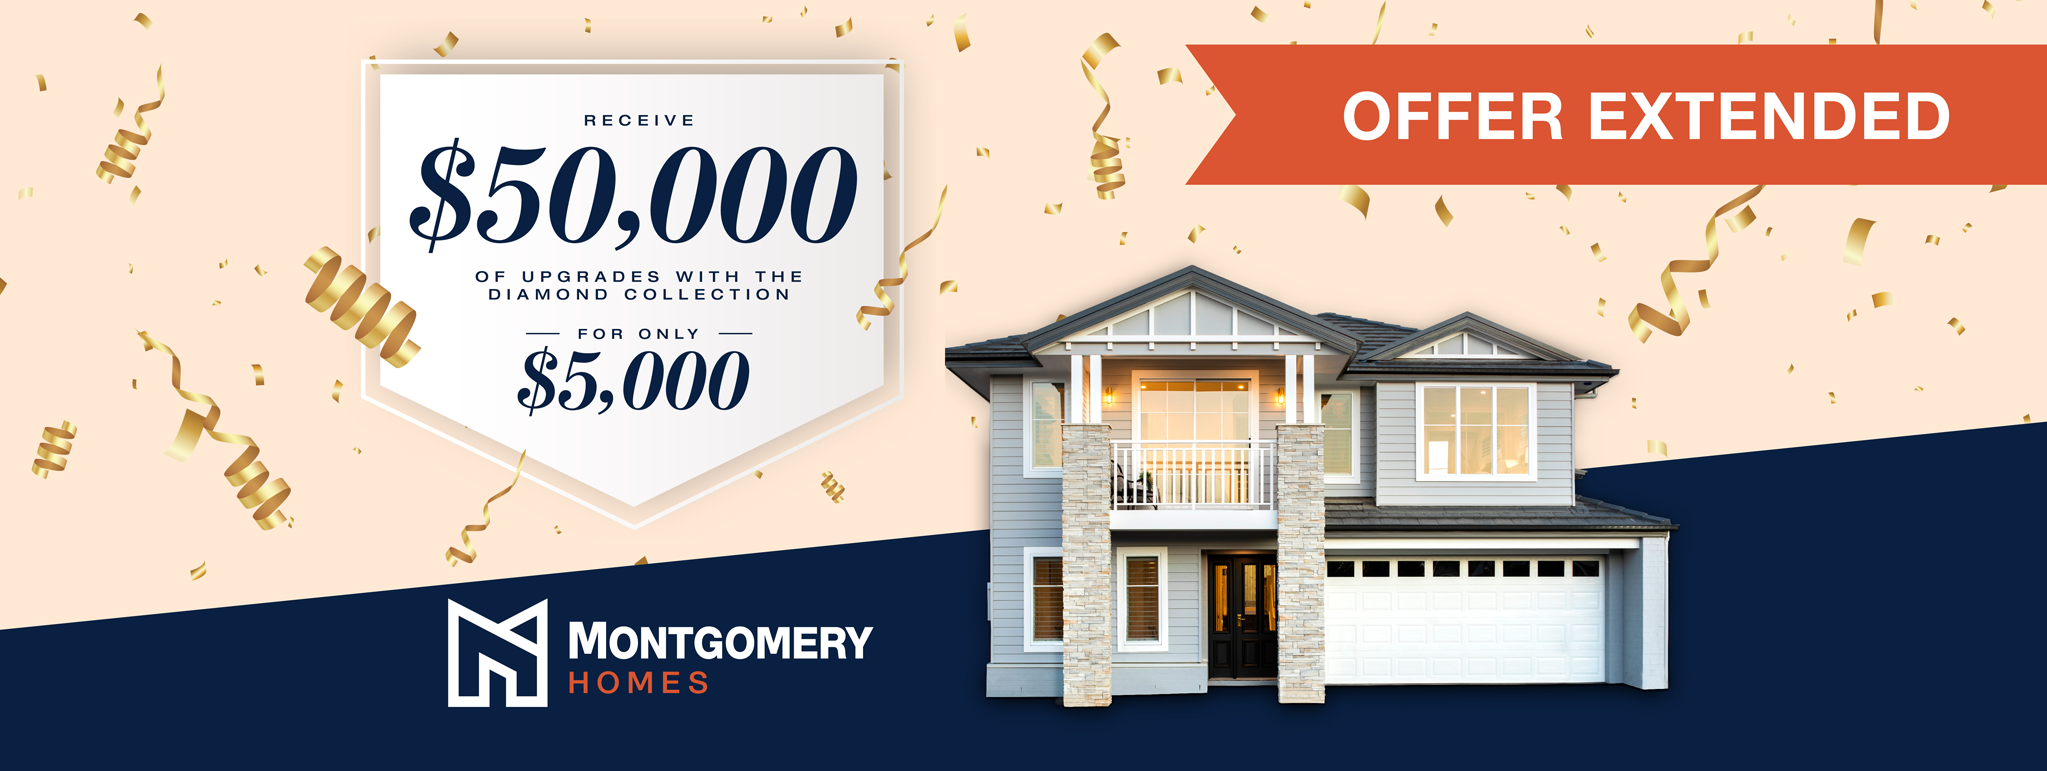 montgomery-promotion-offer